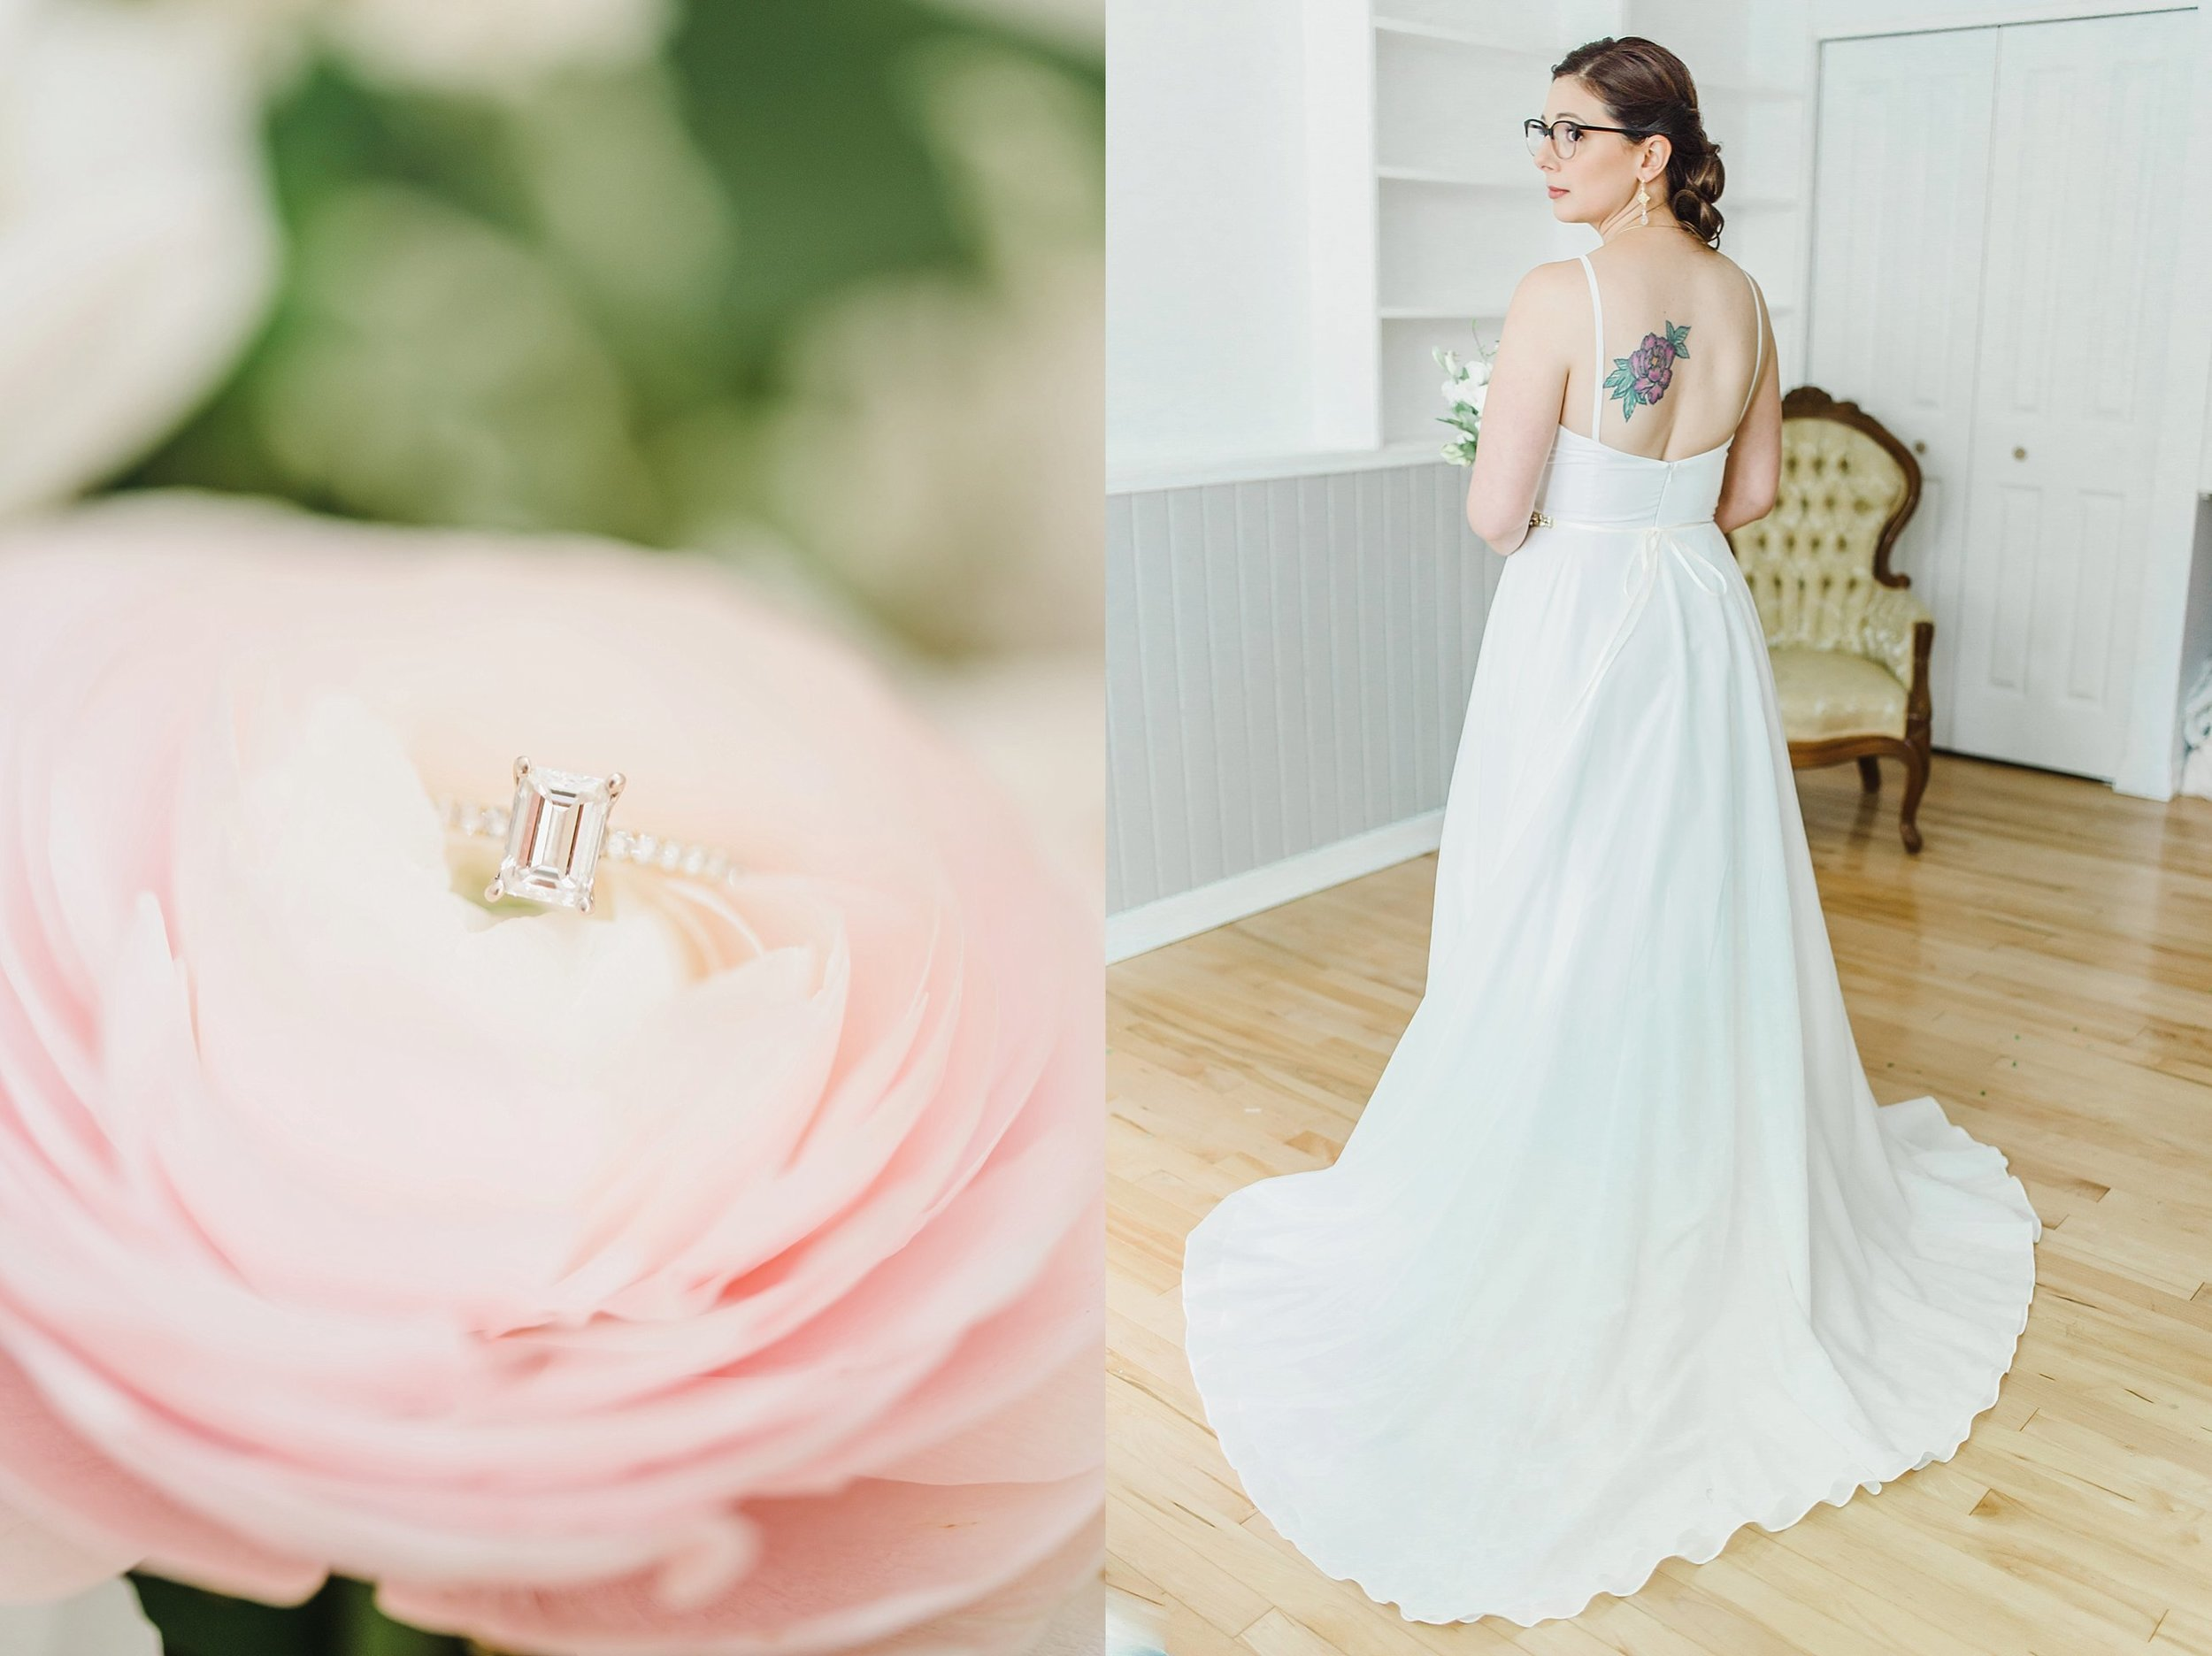 light airy indie fine art ottawa wedding photographer | Ali and Batoul Photography_1683.jpg